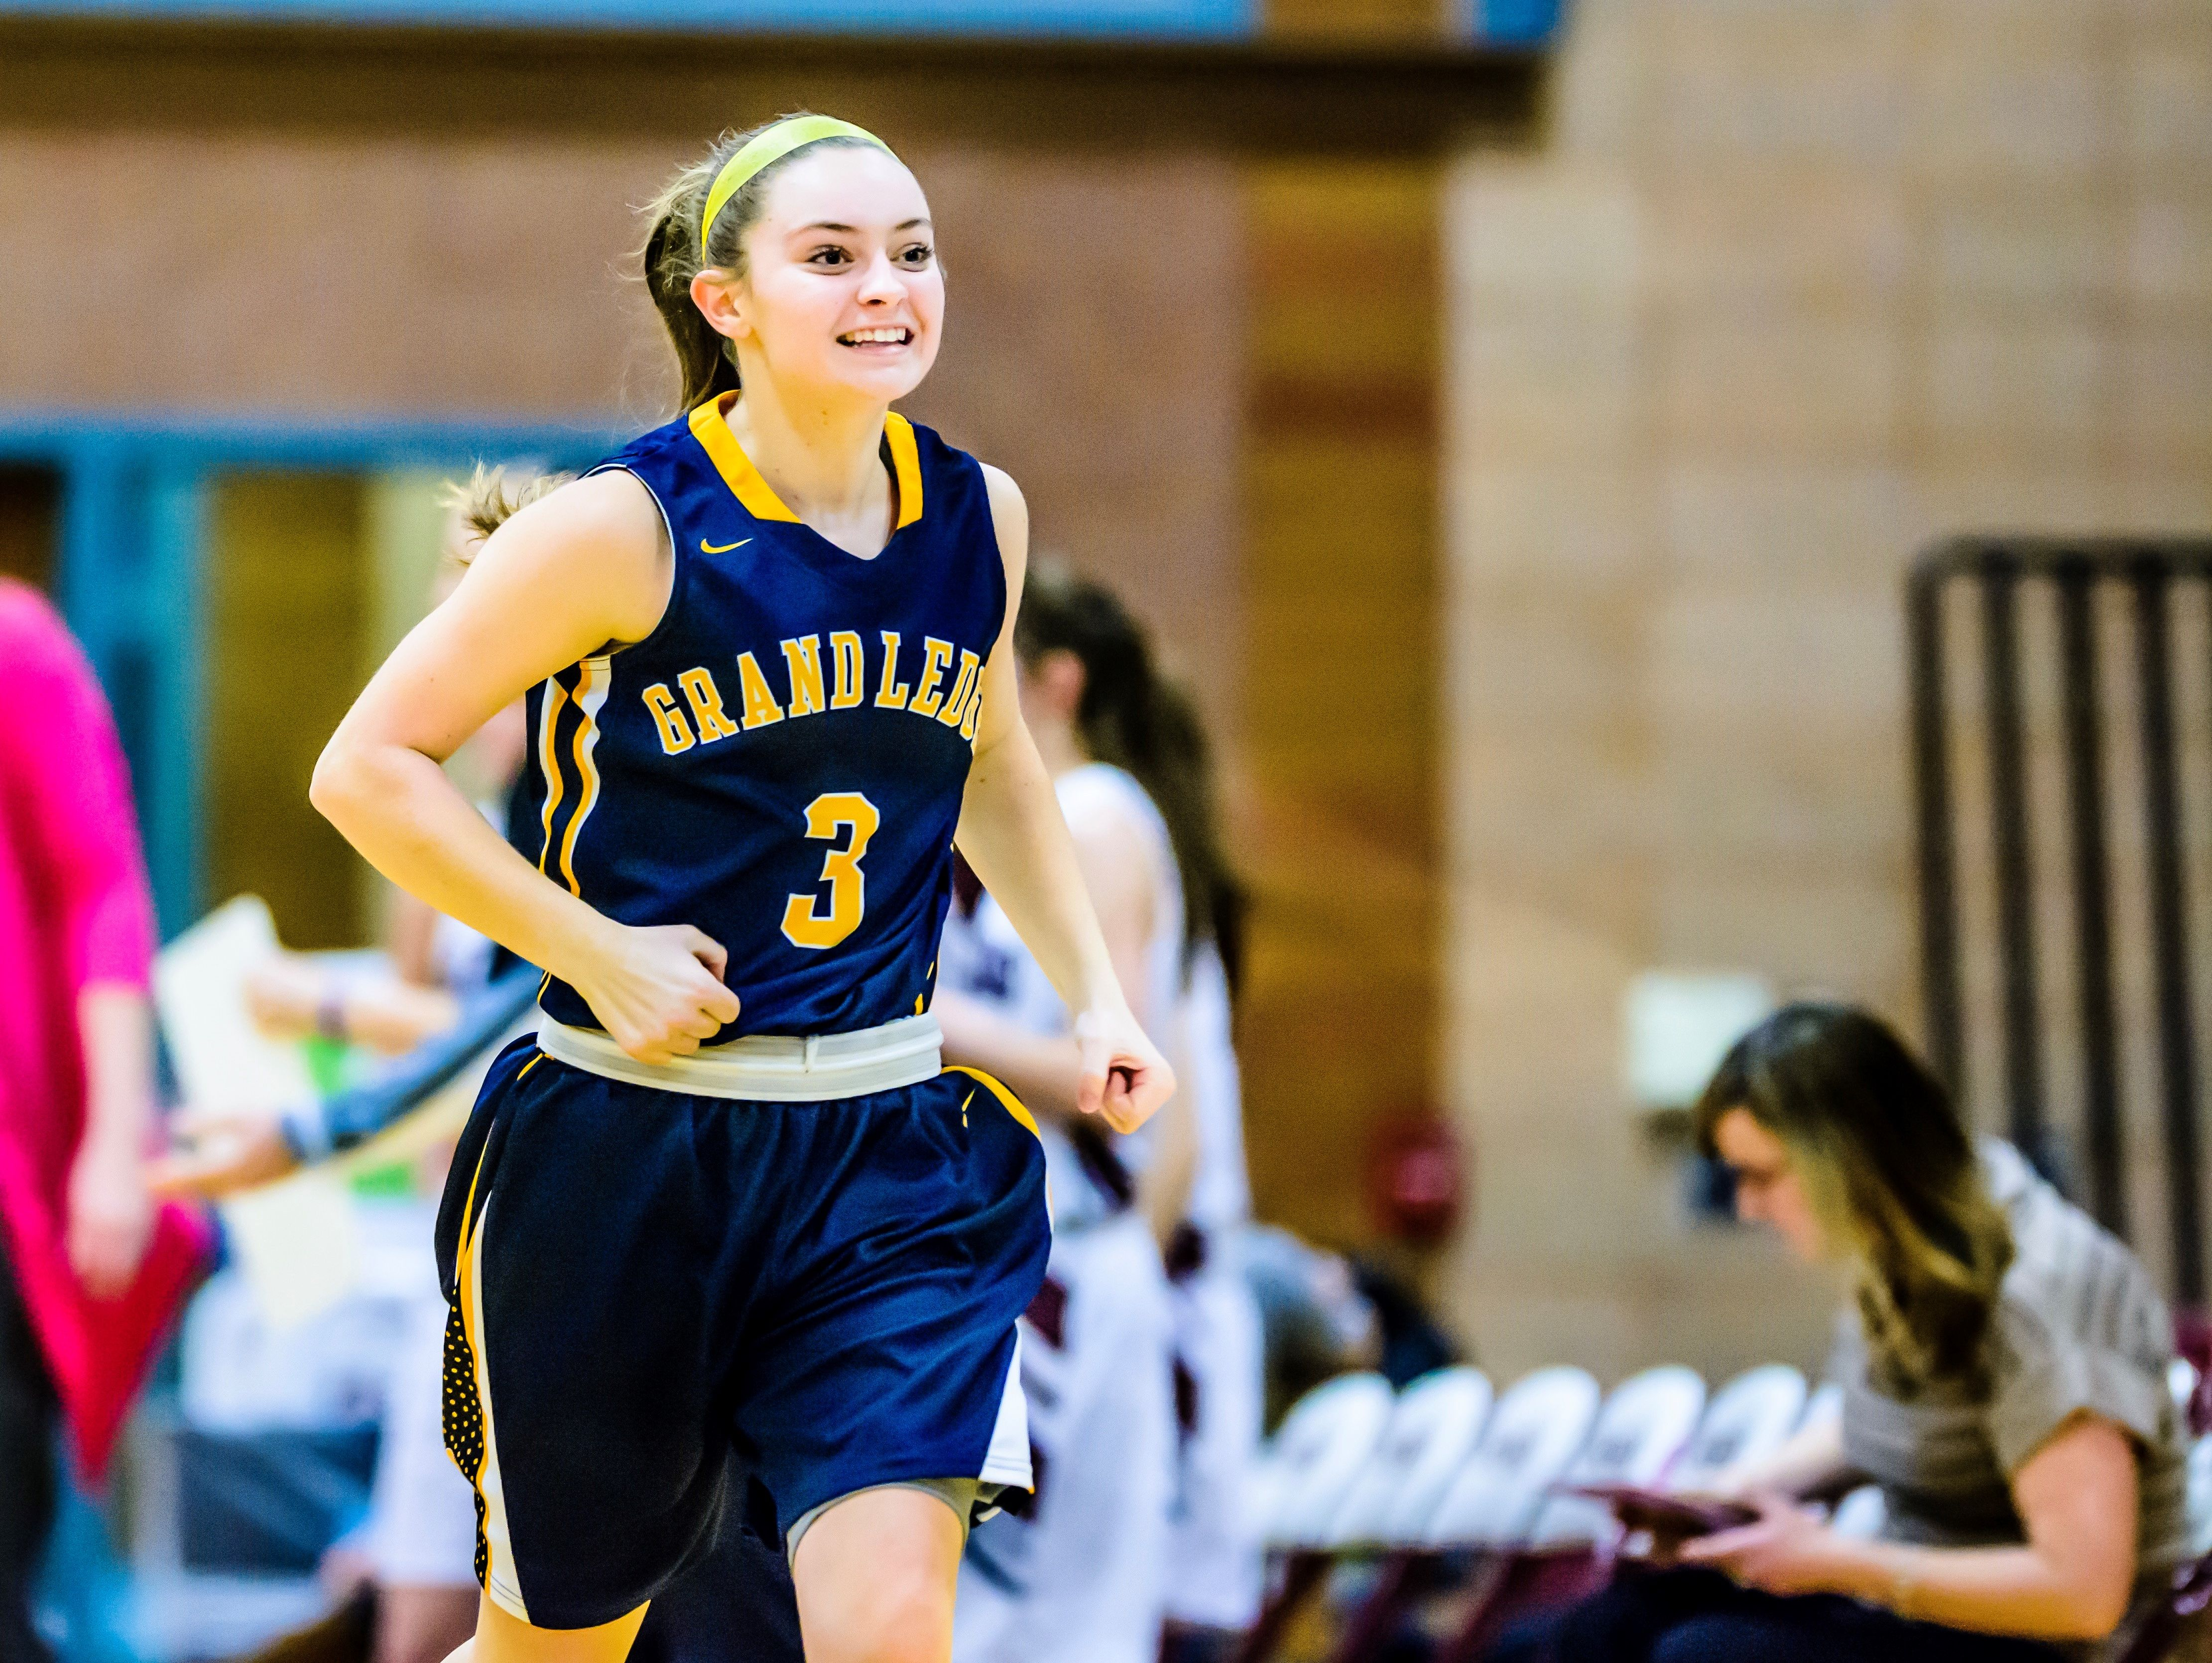 Mackenzie Todd of Grand Ledge celebrates as she runs back to the bench in a timeout after Grand Ledge took a 27-15 lead over Okemos in the 3rd quarter of their game Friday February 3, 2017 in Okemos.